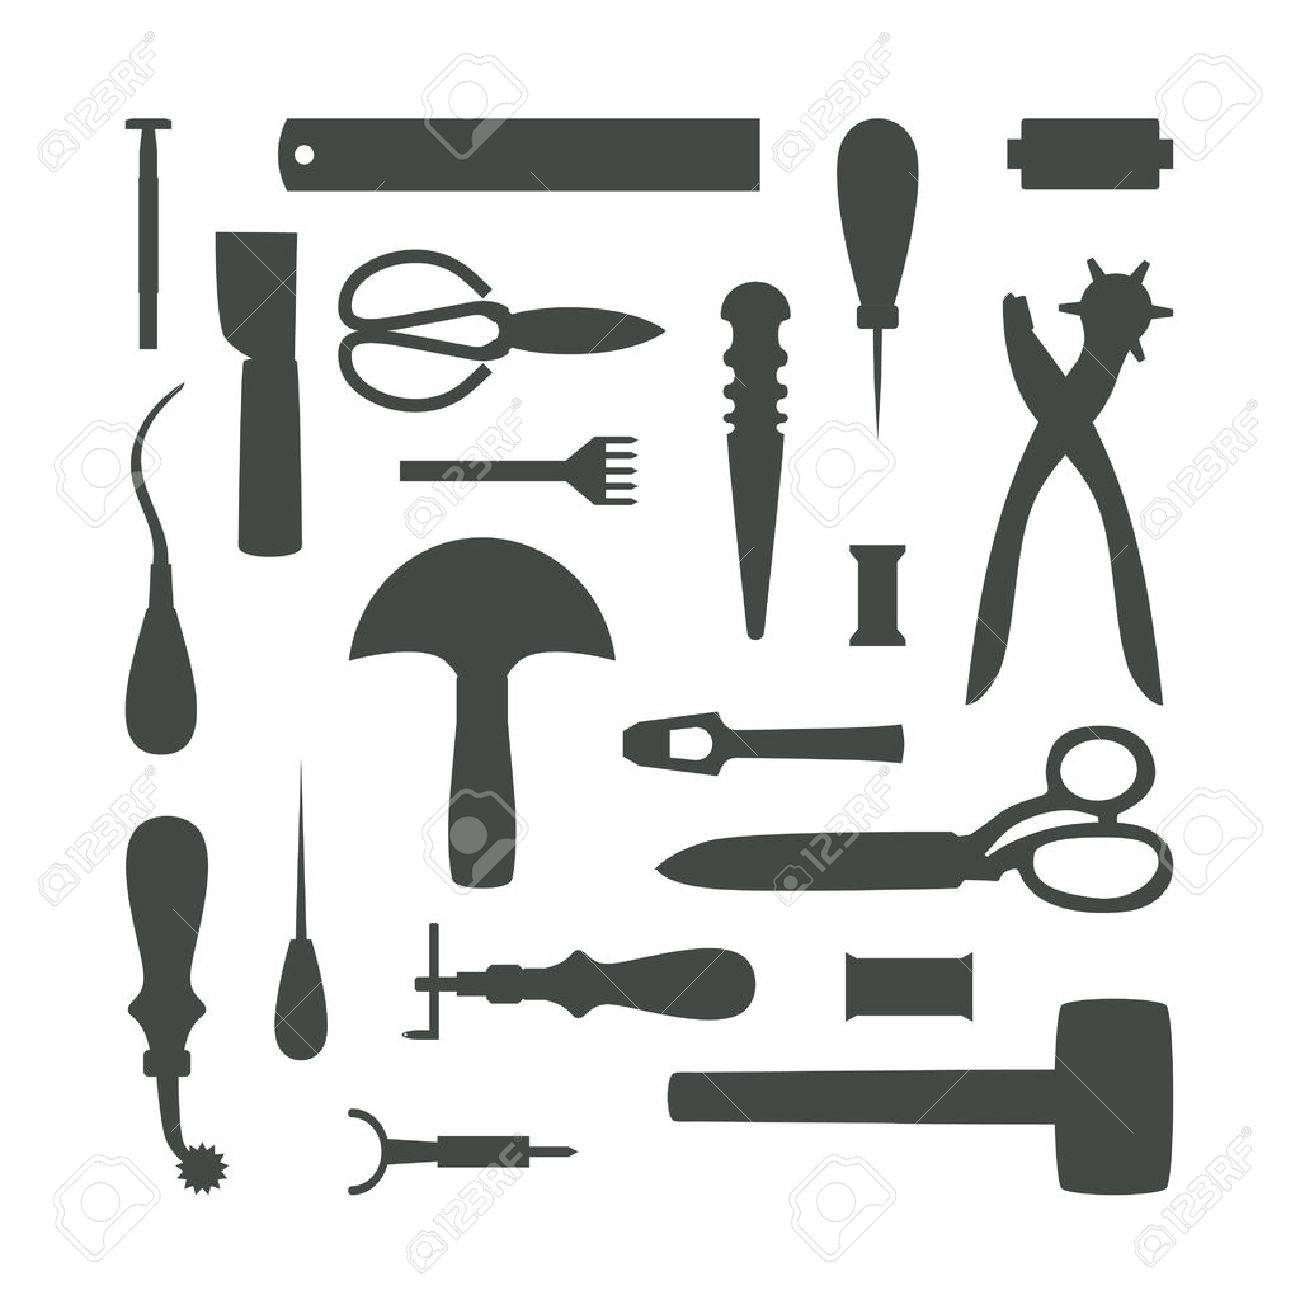 Gray tools silhouettes isolated on white background - 38626870